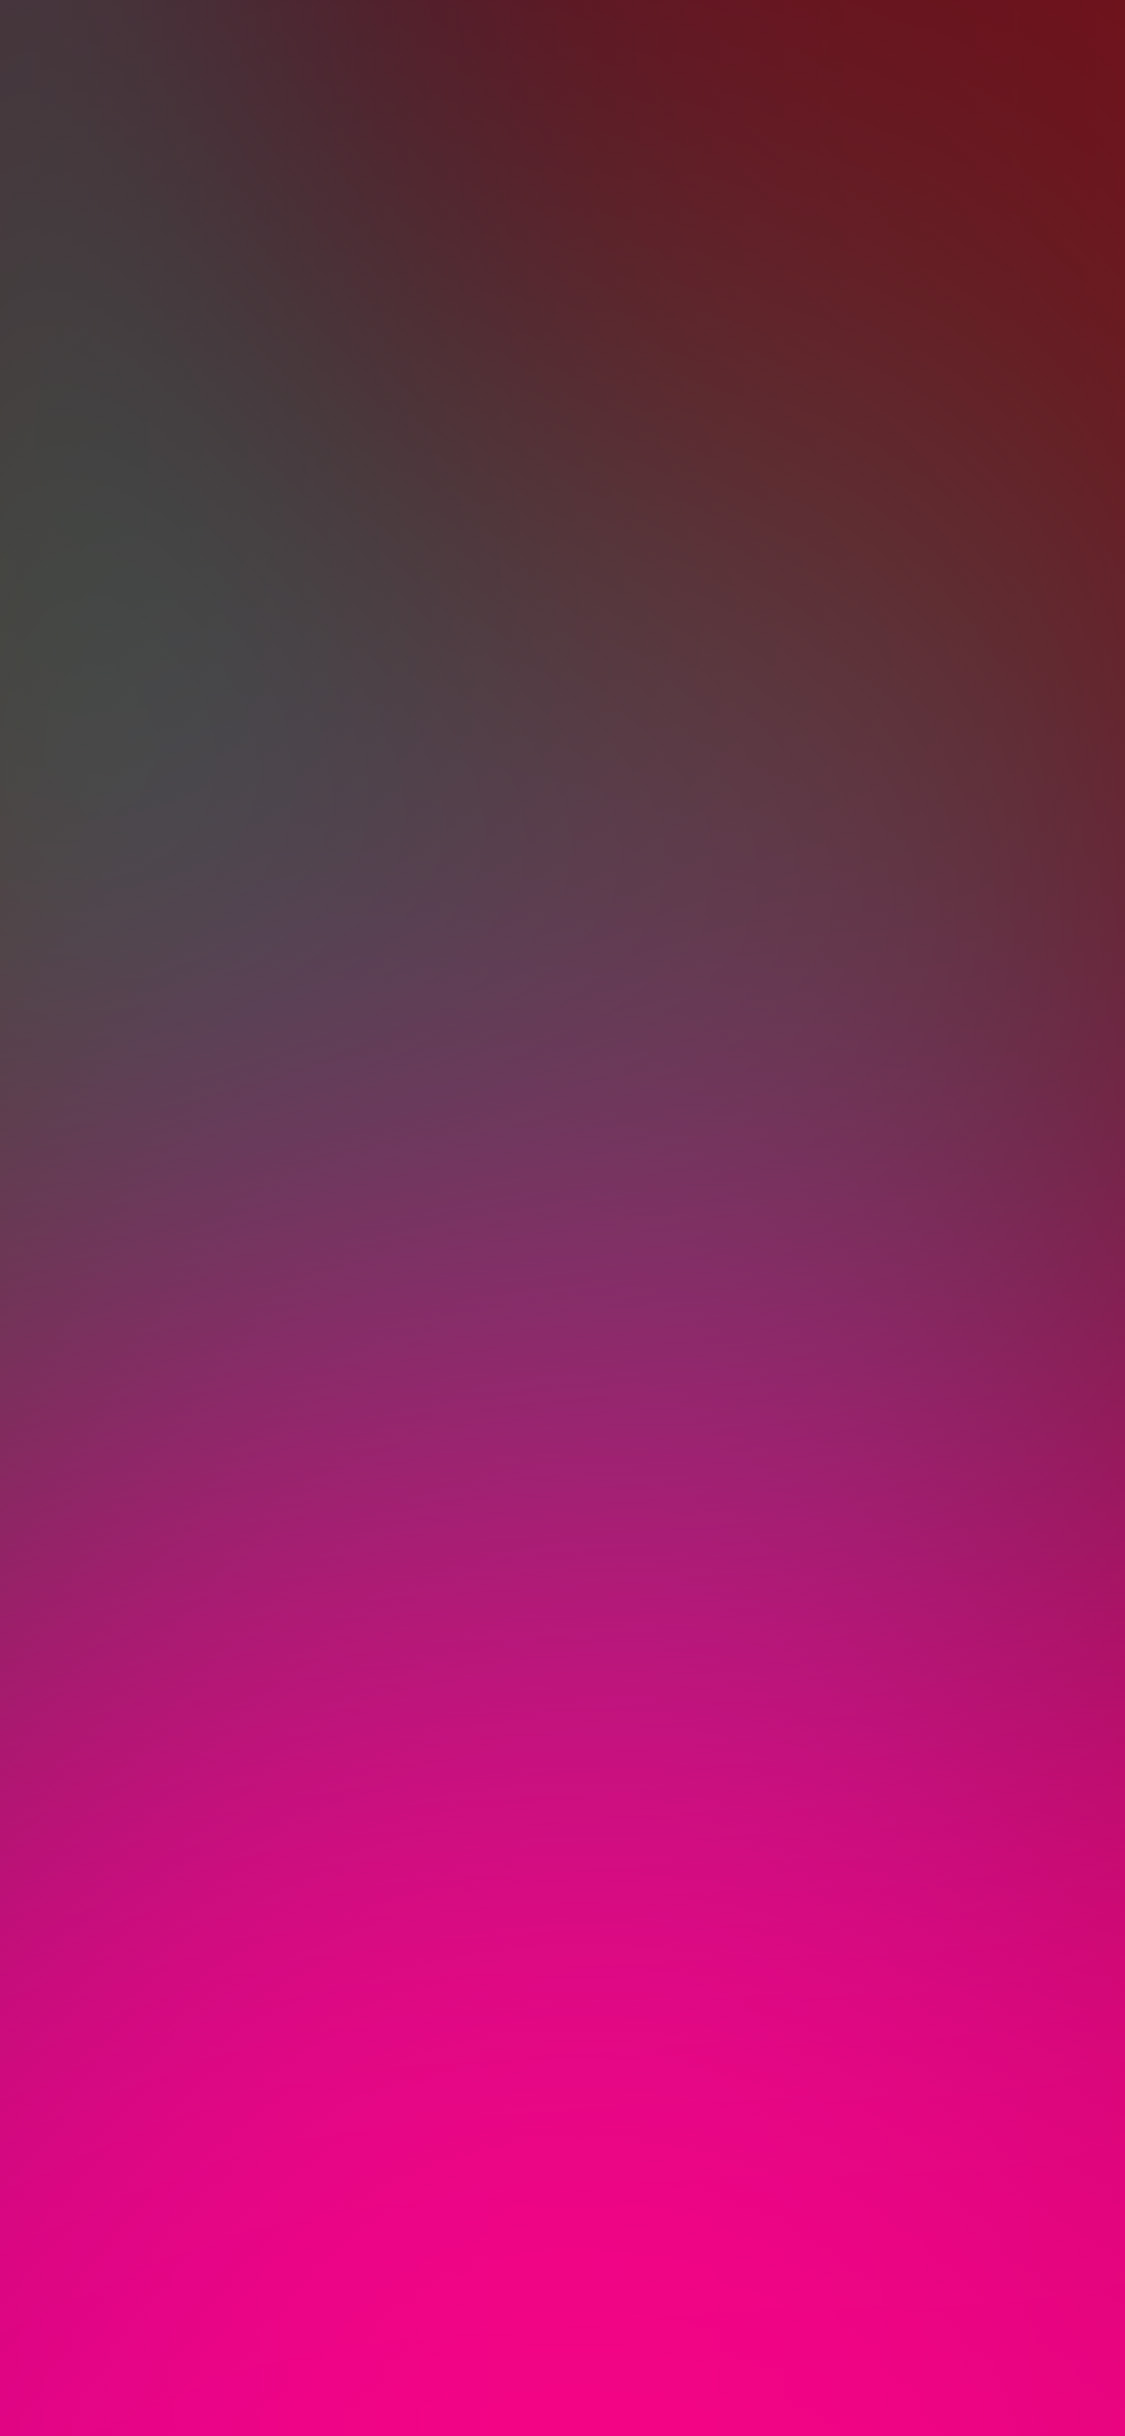 iPhonexpapers.com-Apple-iPhone-wallpaper-sm65-red-pink-blur-gradation